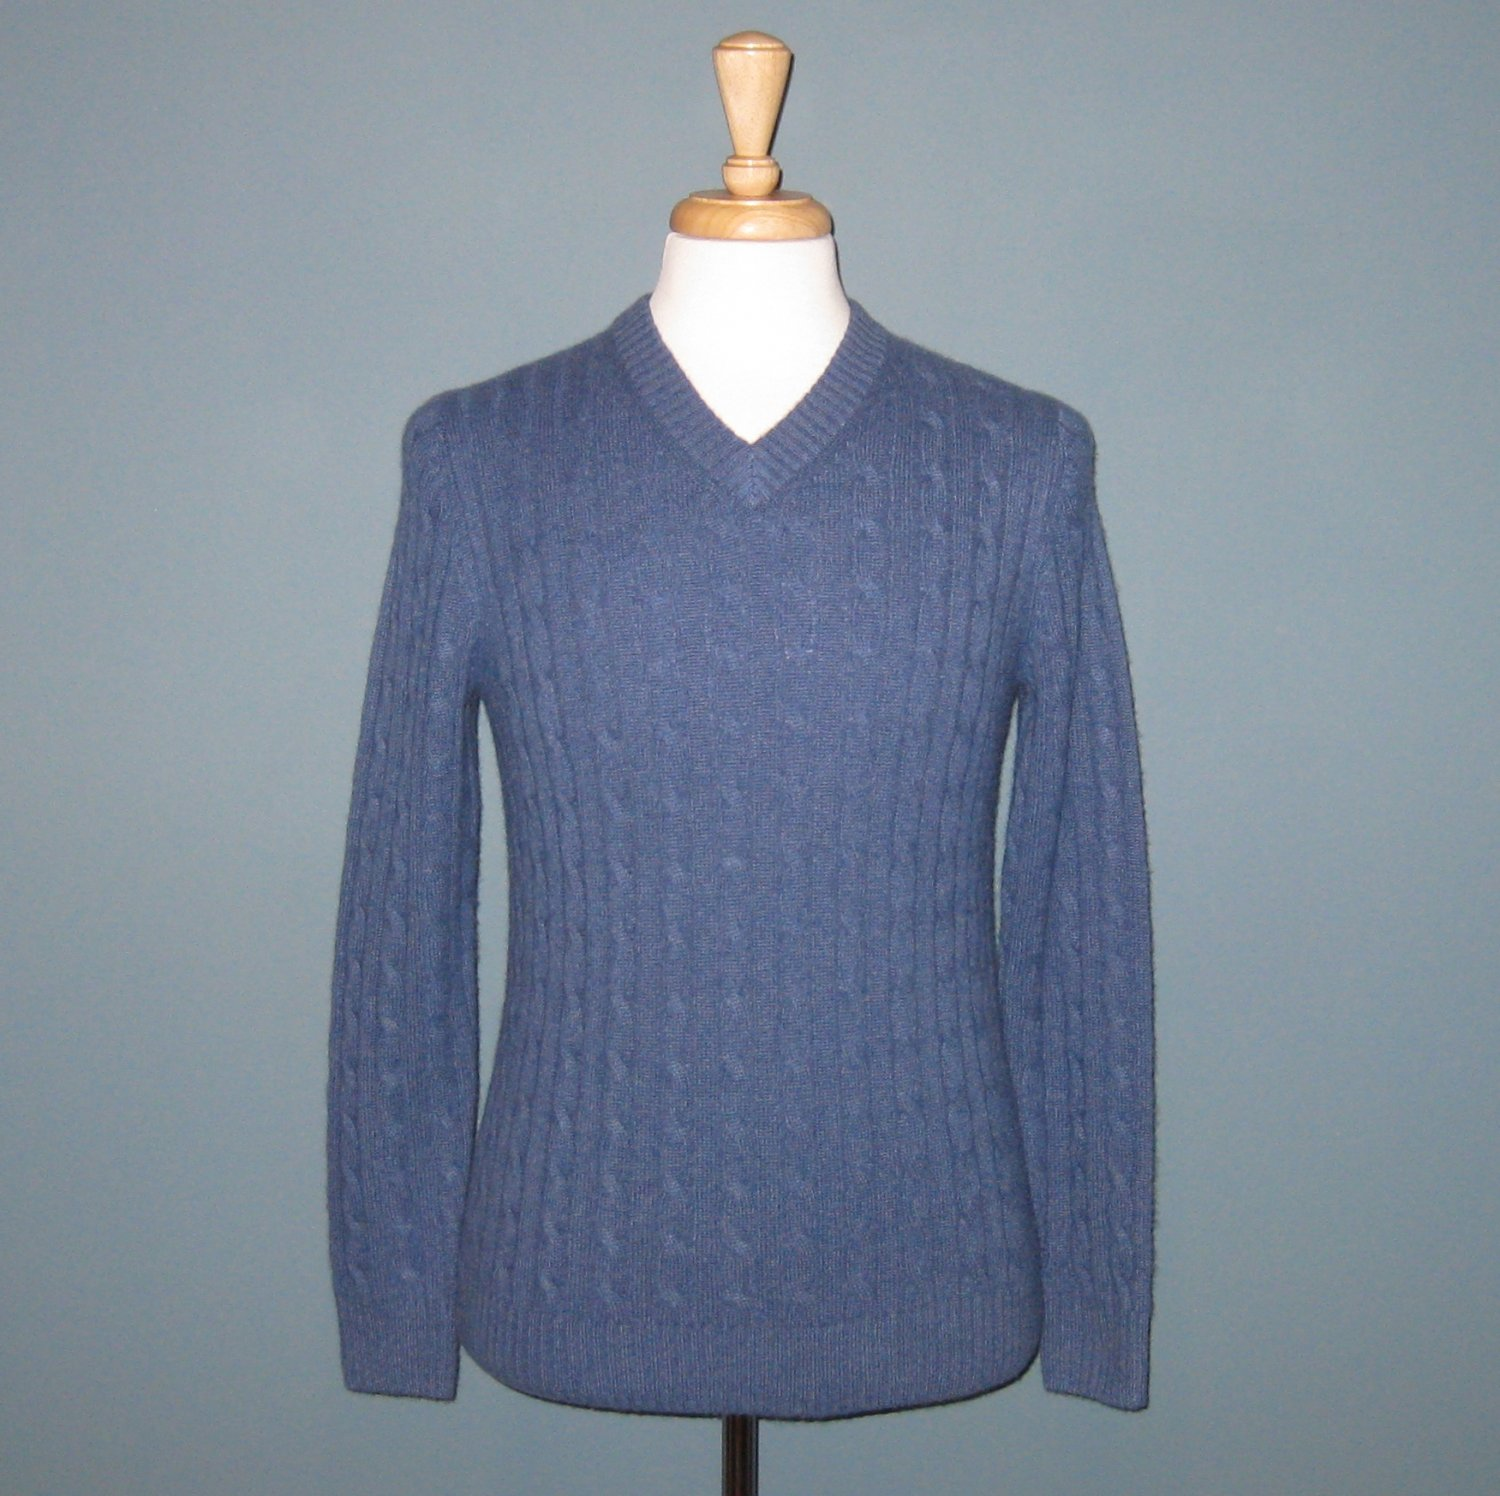 NWT Daniel Bishop 2-Ply 100% Cashmere Blue Cable Knit Long Sleeve V-neck Sweater - S